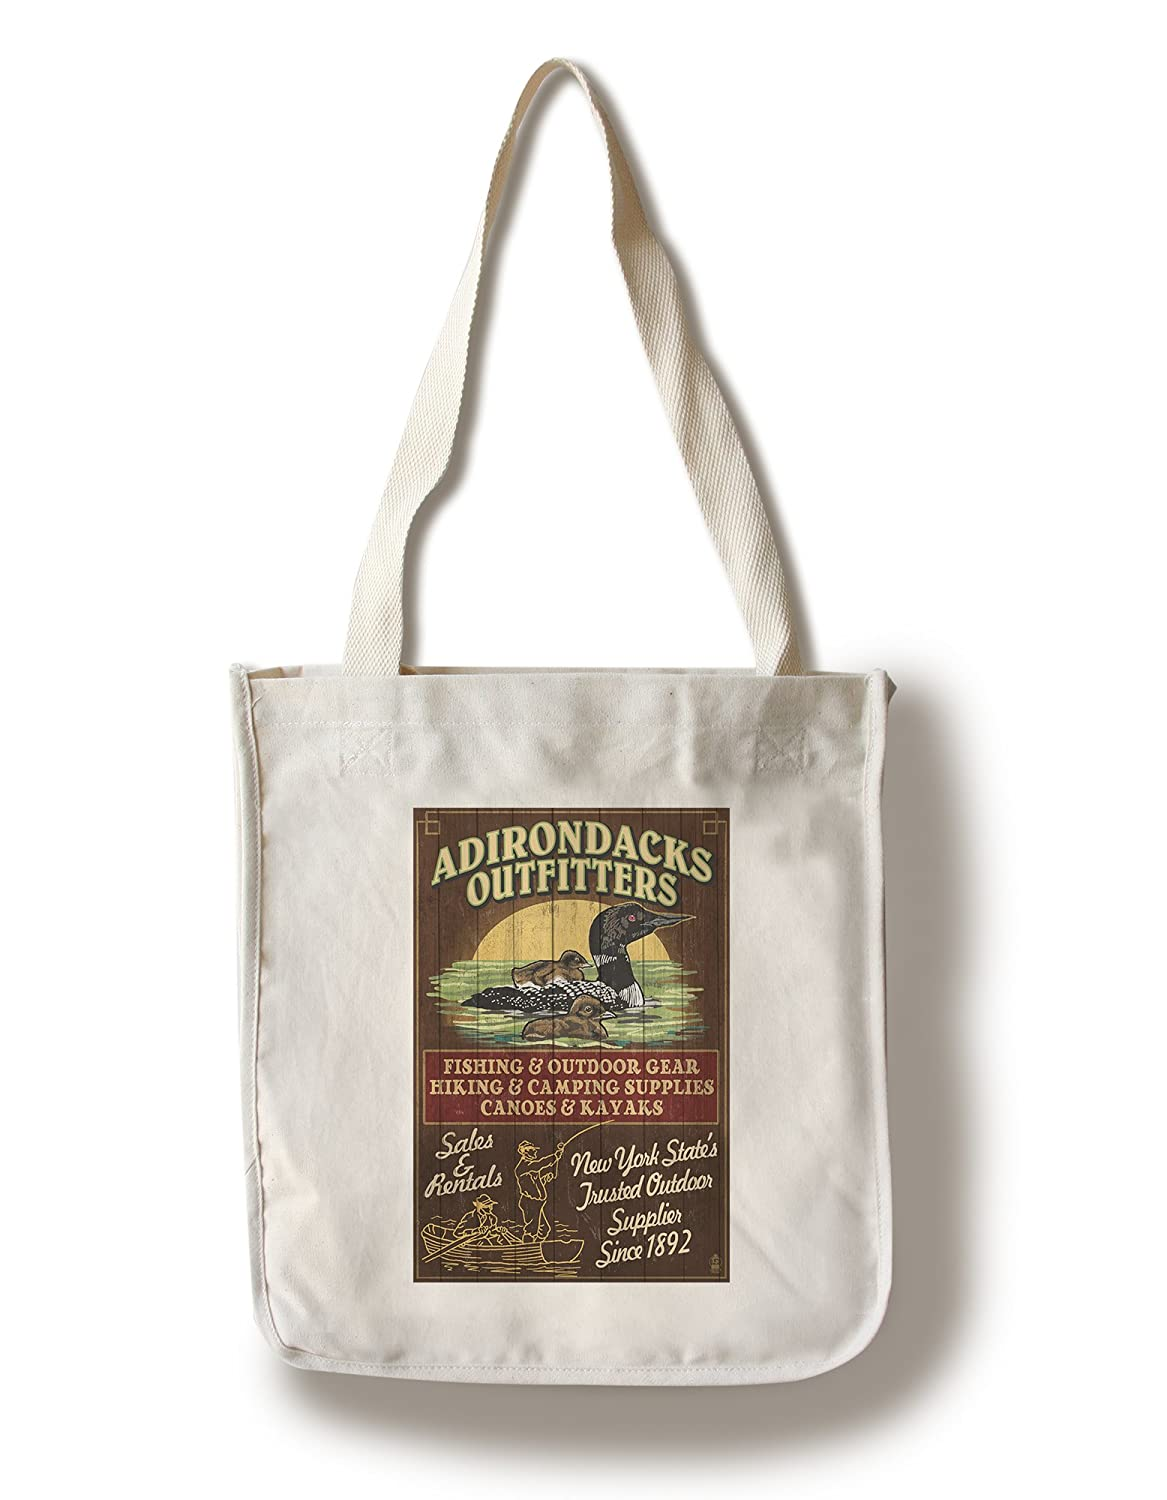 割引価格 The Adirondacks、ニューヨーク州 – Loon x Vintage Sign Tote 12 x Bag 18 Metal Sign LANT-41363-12x18M B018816GYQ Canvas Tote Bag Canvas Tote Bag, ゴルフショップジョプロ:4e0da9fa --- arianechie.dominiotemporario.com